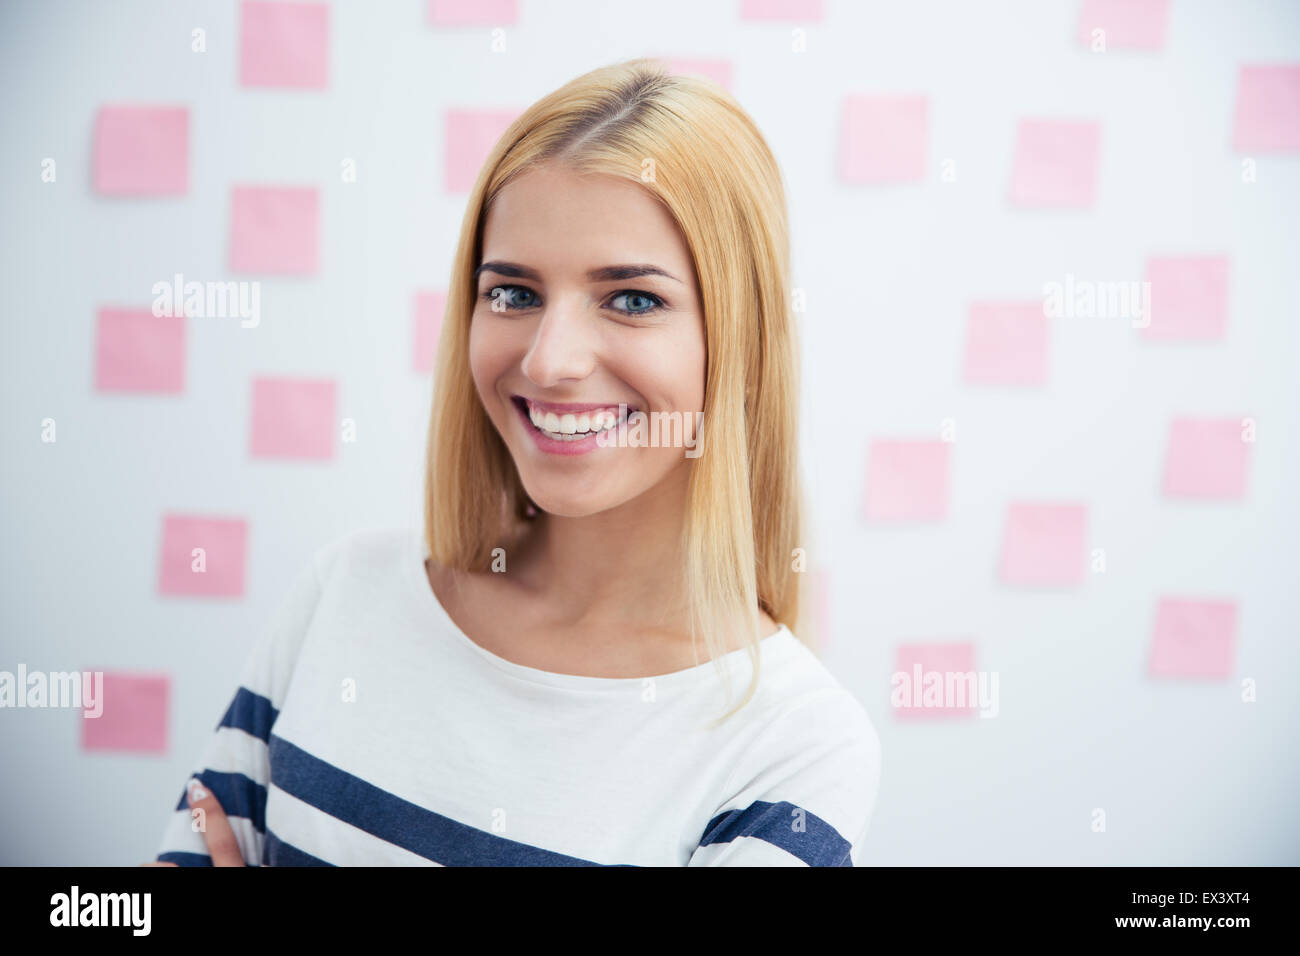 Cheerful young woman standing in office with stickers on background - Stock Image